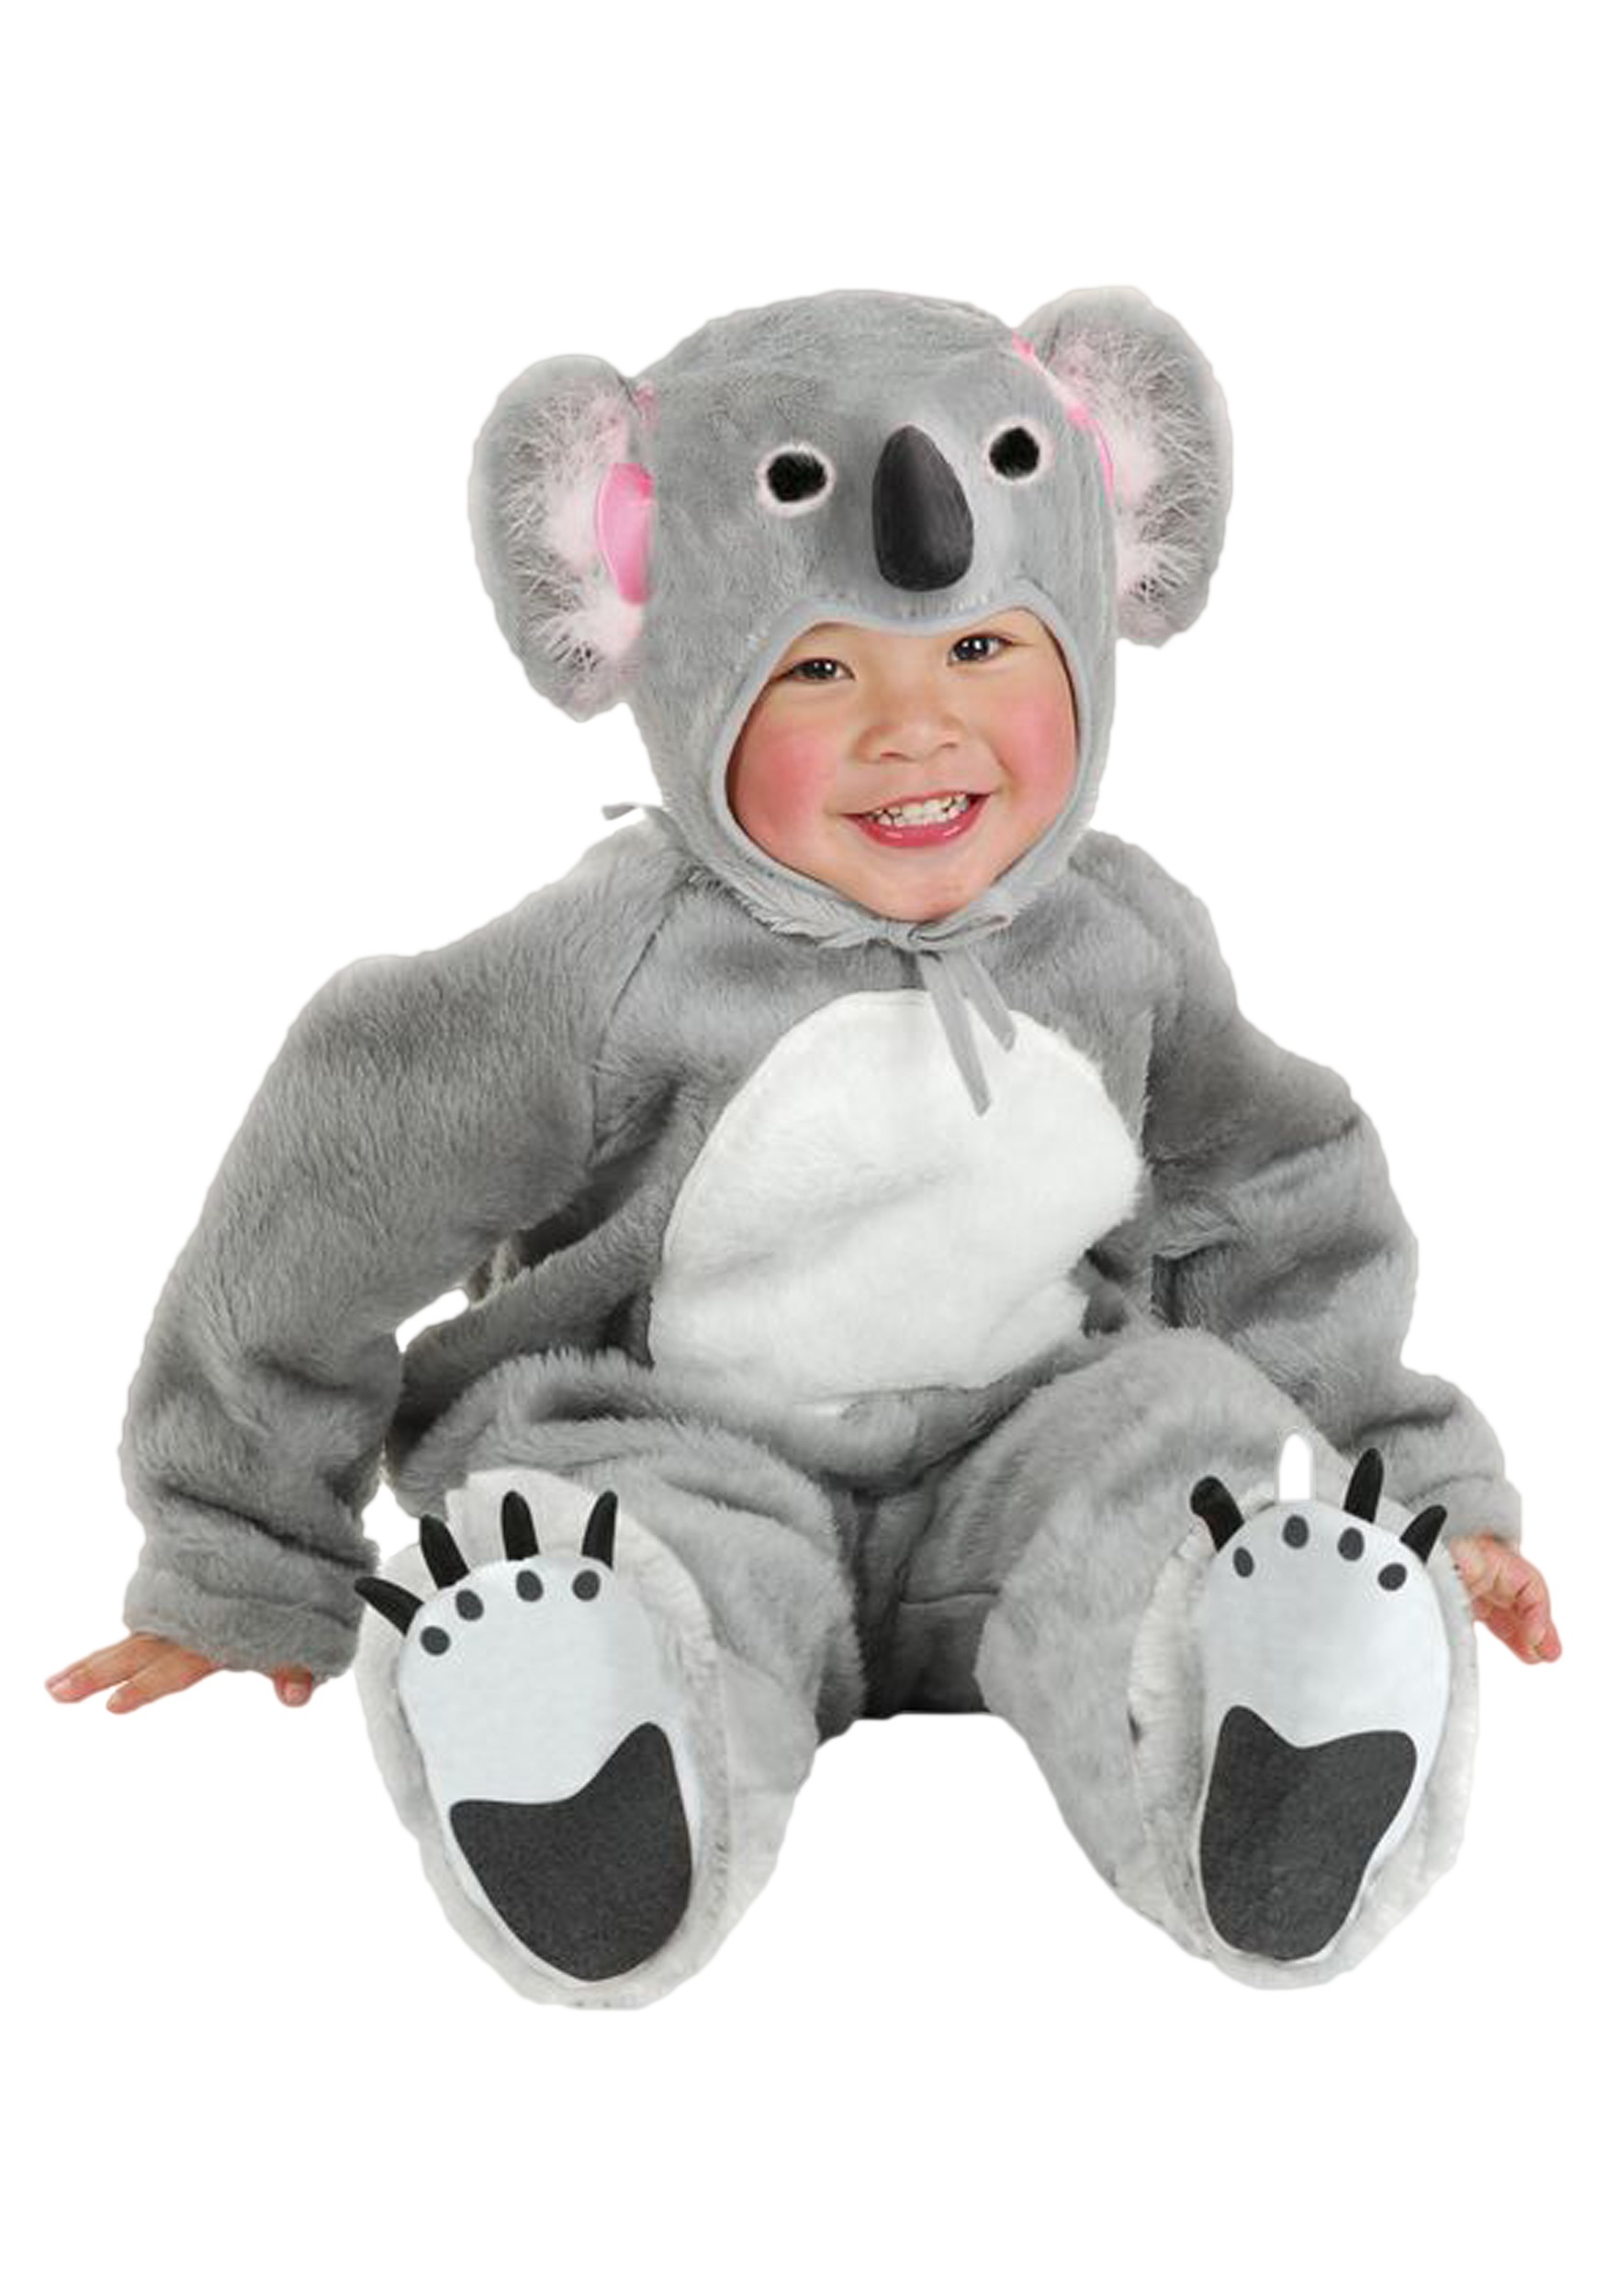 Shop for Teen Halloween costumes for teenagers - Huge selection and same day shipping when you order by 4PM EST.